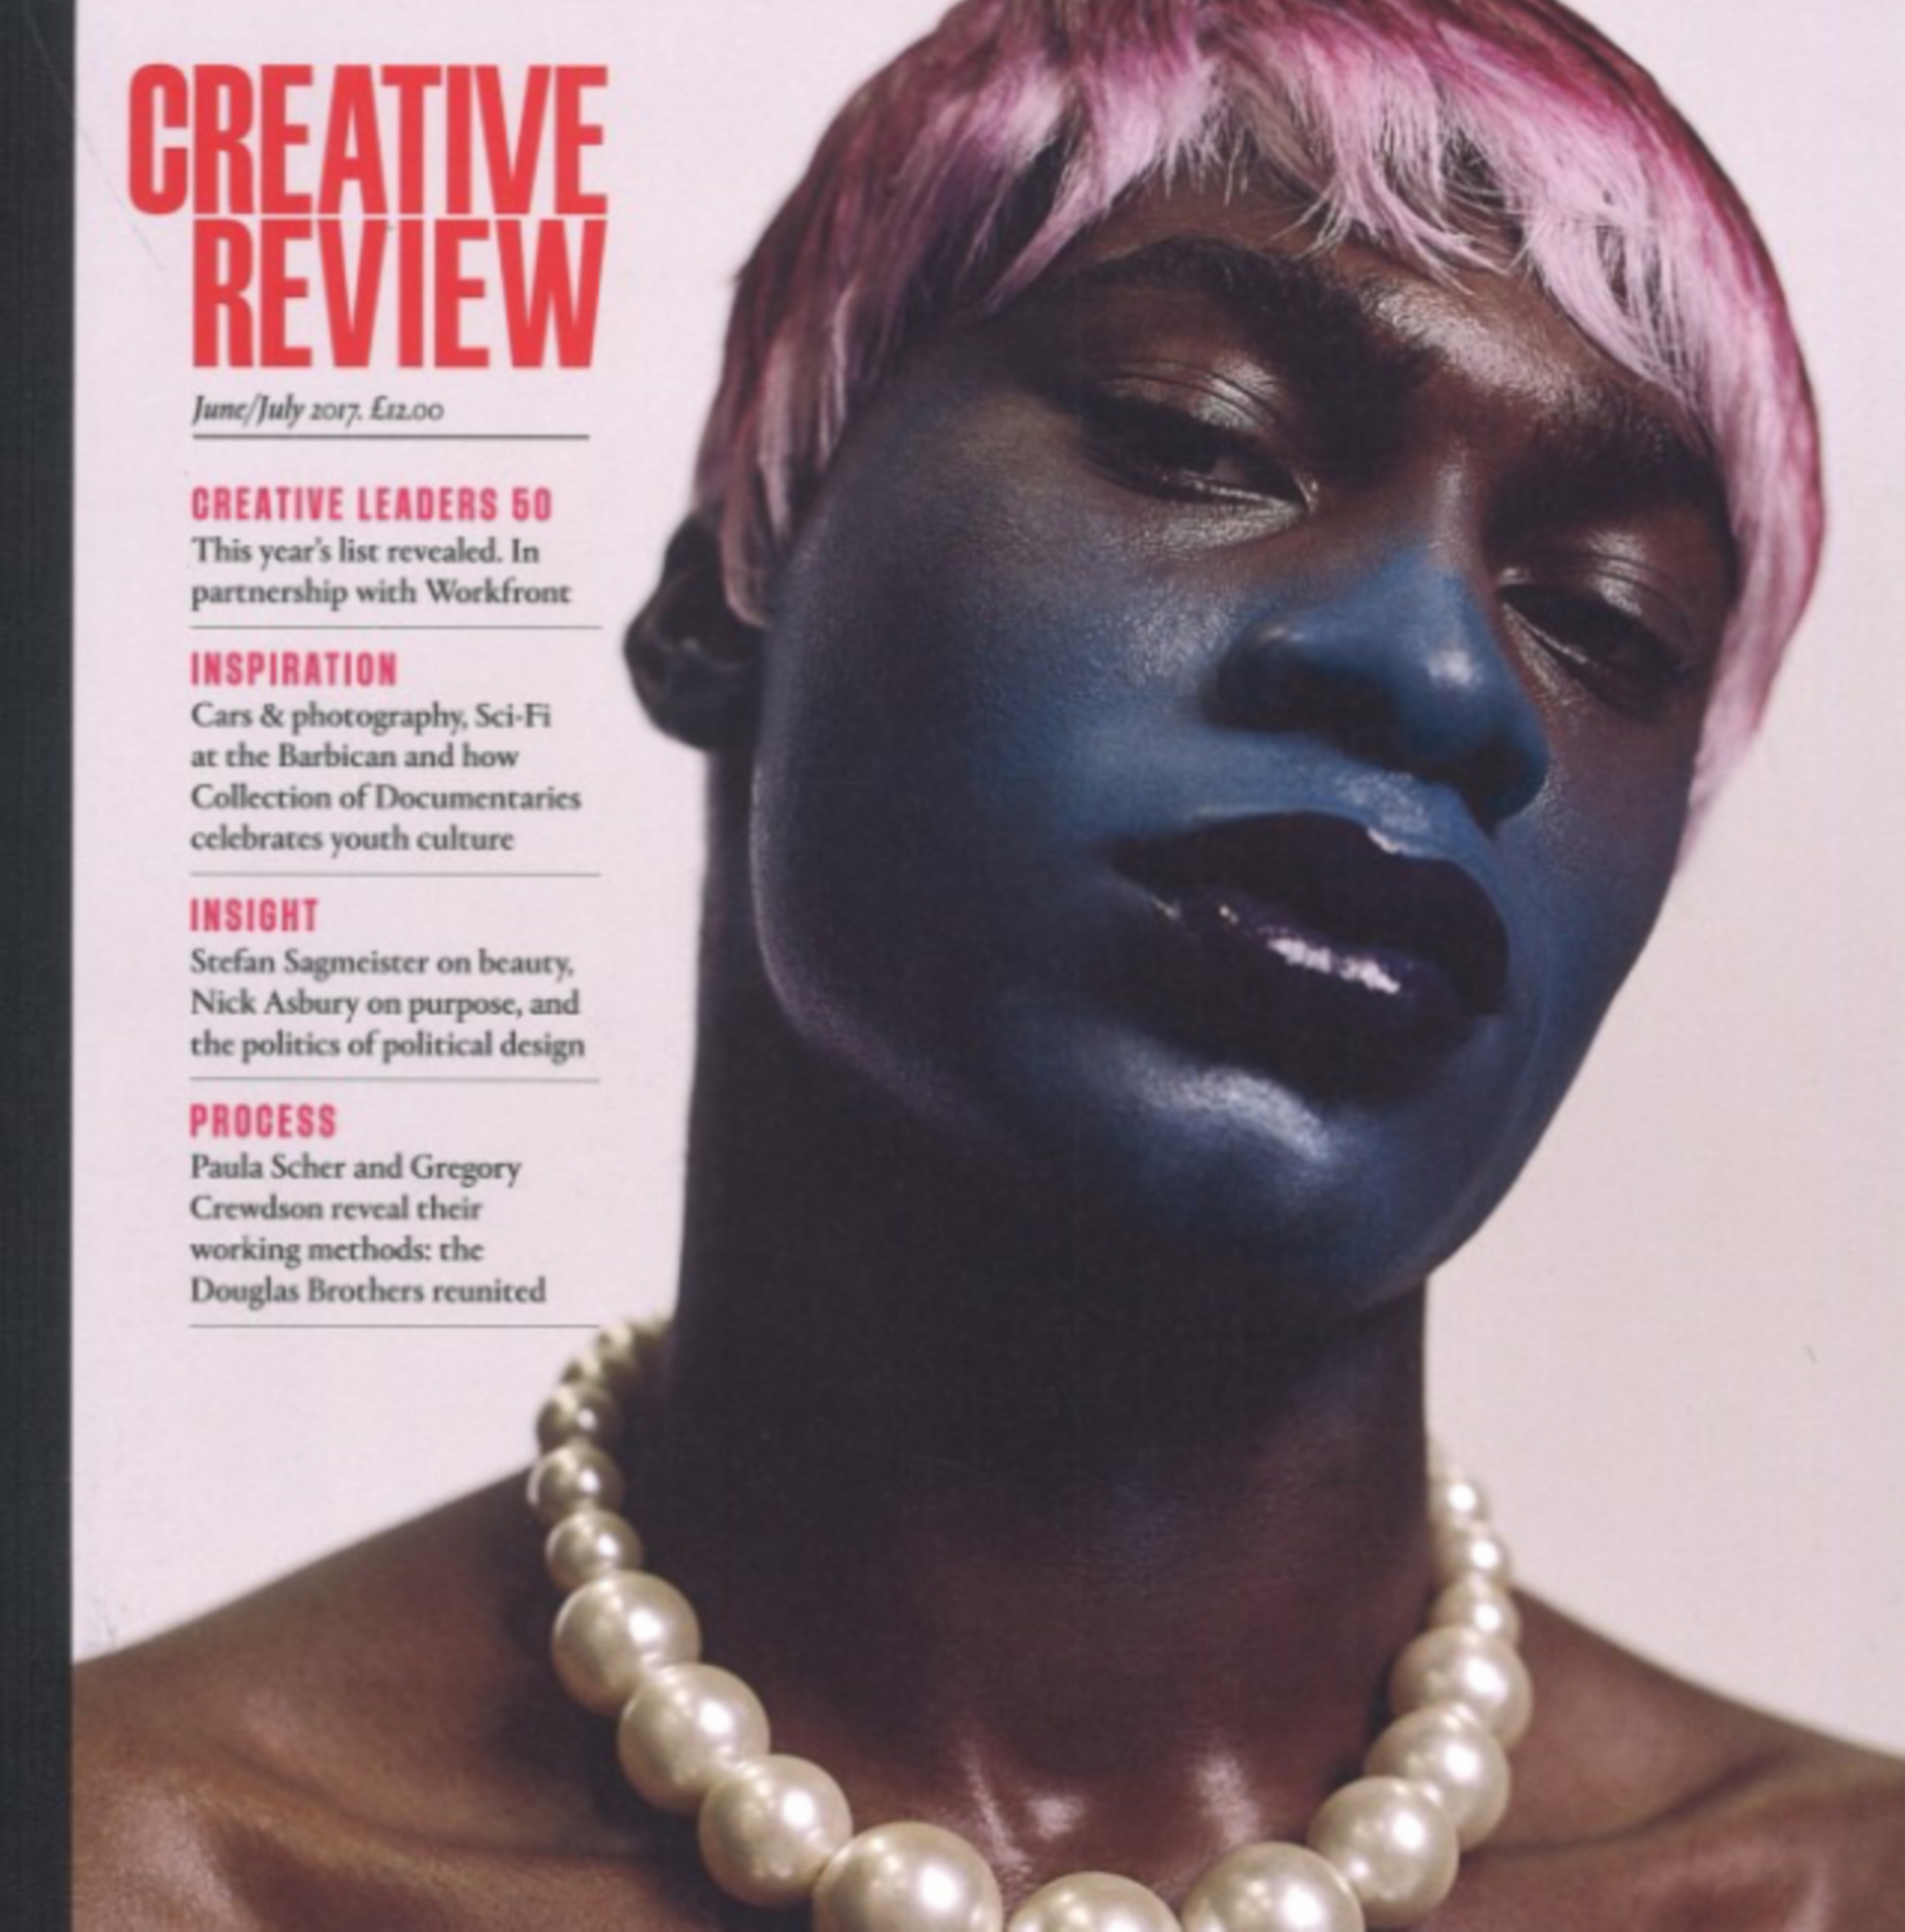 Pip Jamieson named one of Creative Review's Creative Leaders